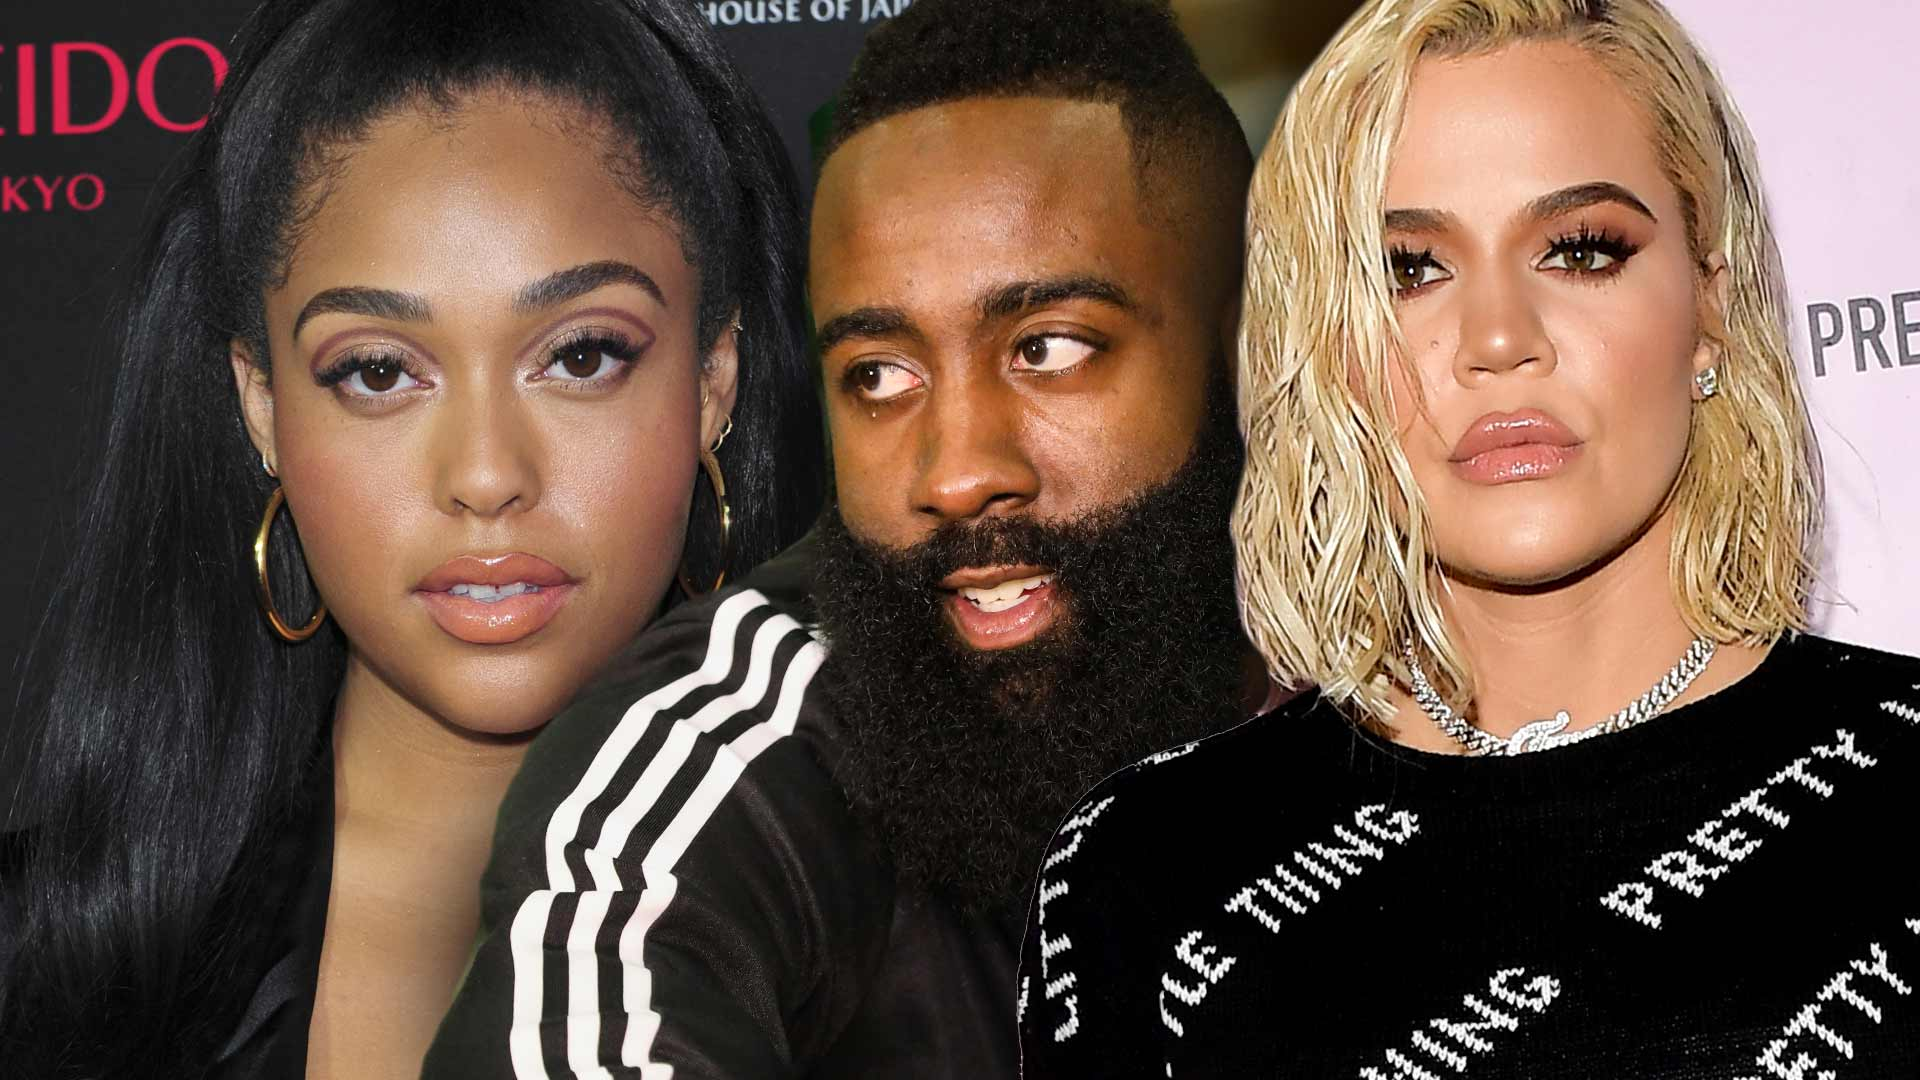 """jordyn-woods-allegedly-hooked-up-with-khloe-kardashians-ex-james-harden-too"""